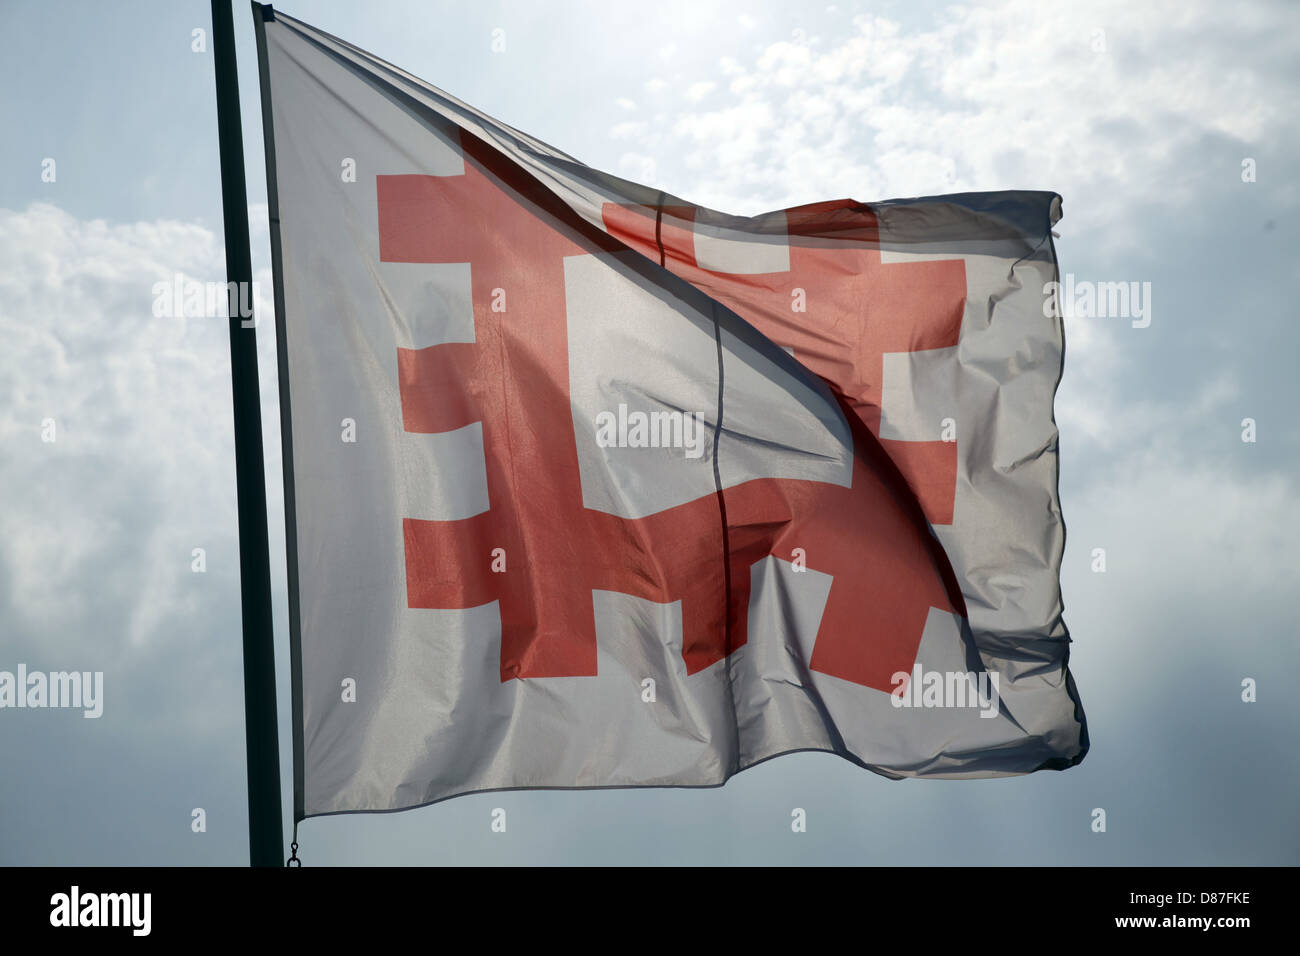 ENGLISH HERITAGE FLAG SCARBOROUGH NORTH YORKSHIRE ENGLAND 12 August 2012 - Stock Image